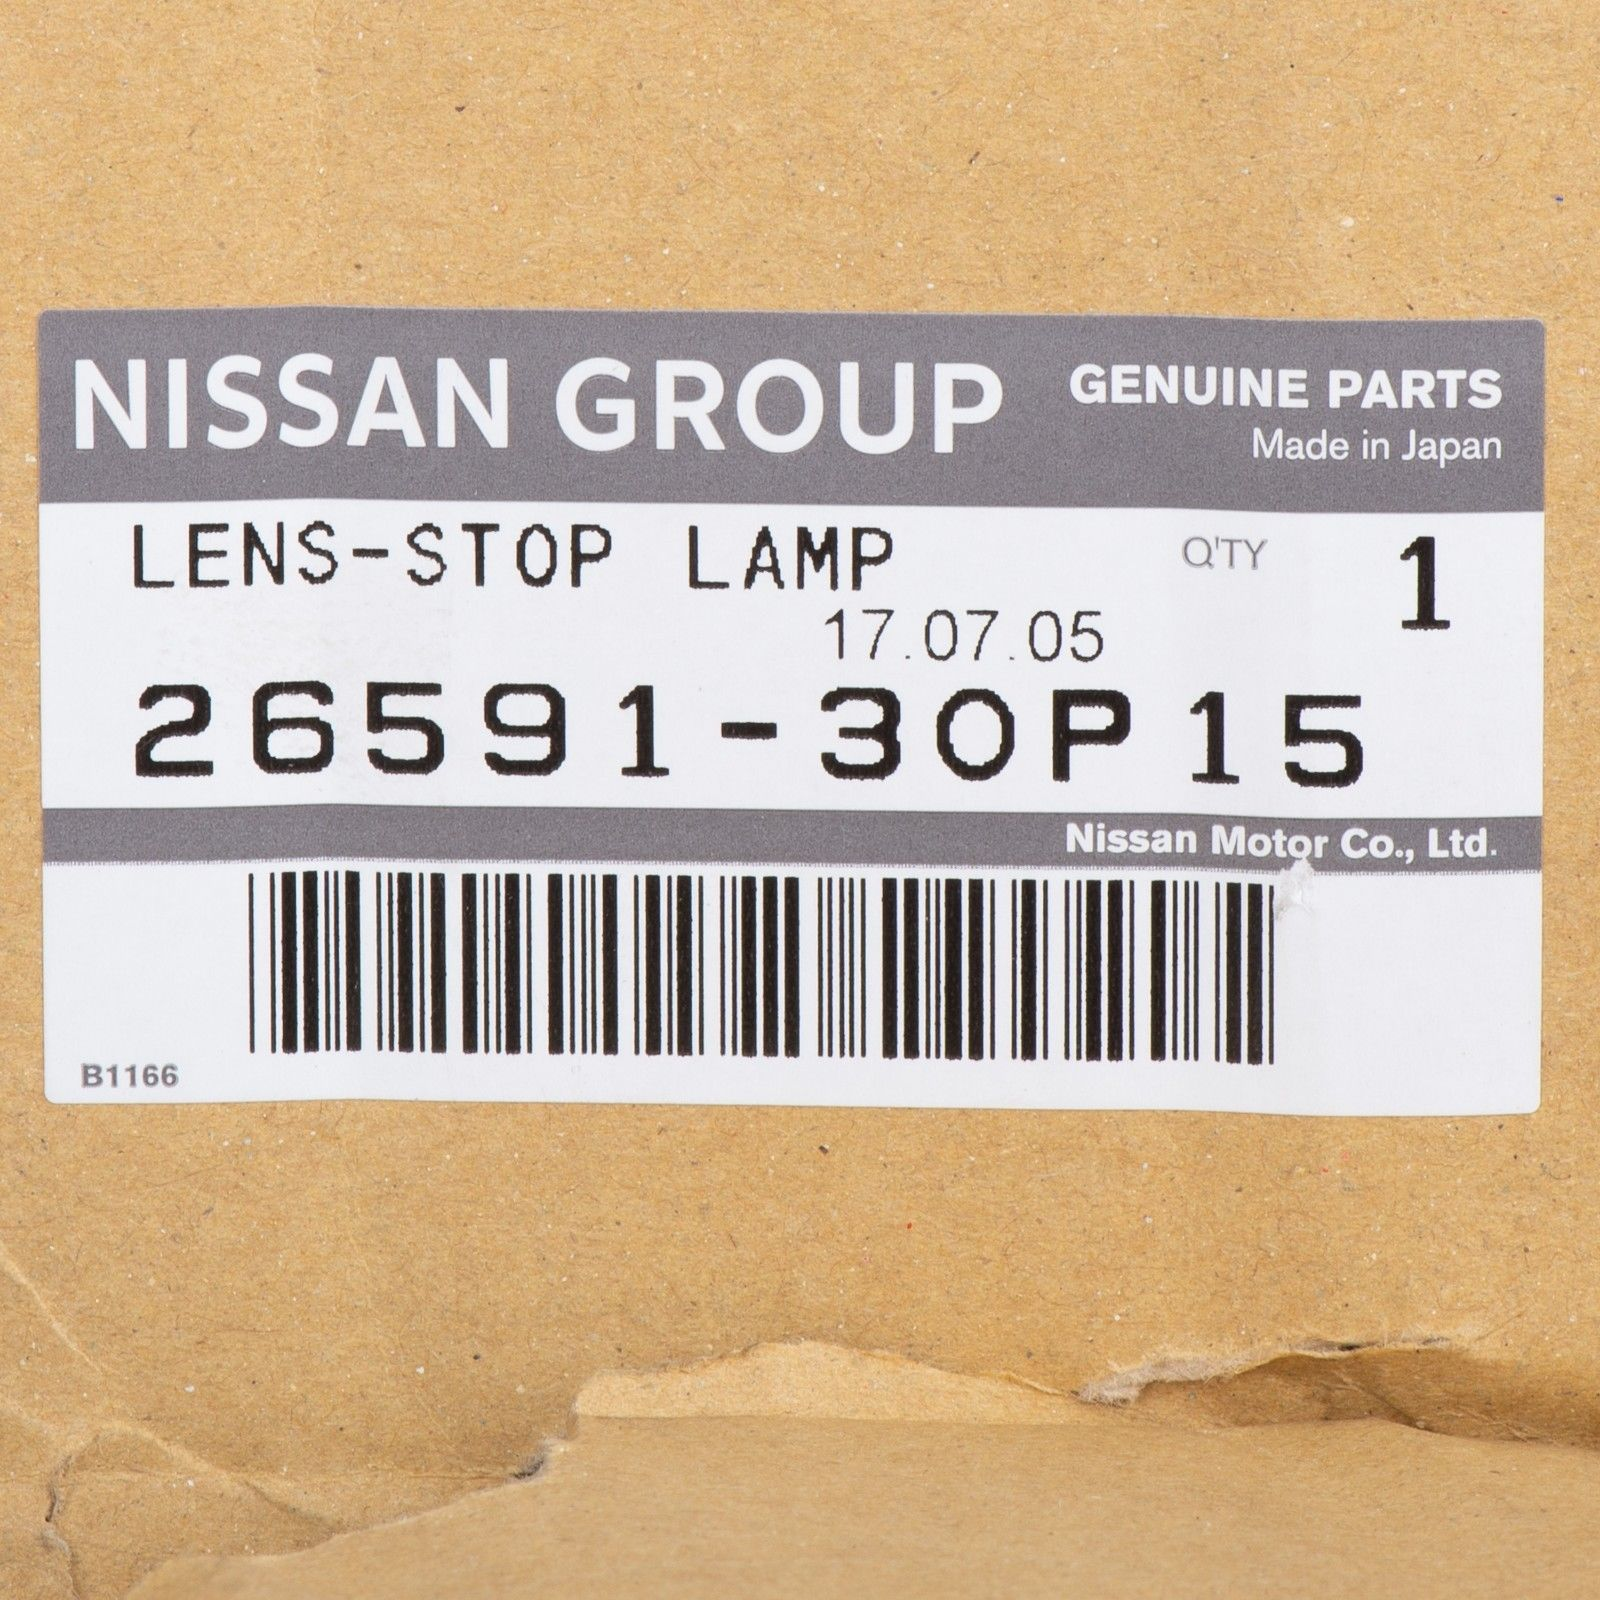 Awesome NEW OEM Nissan 300ZX 1990-1996 3rd Brake Light Lens Stop Lamp  2659130P15 GENUINE 2018